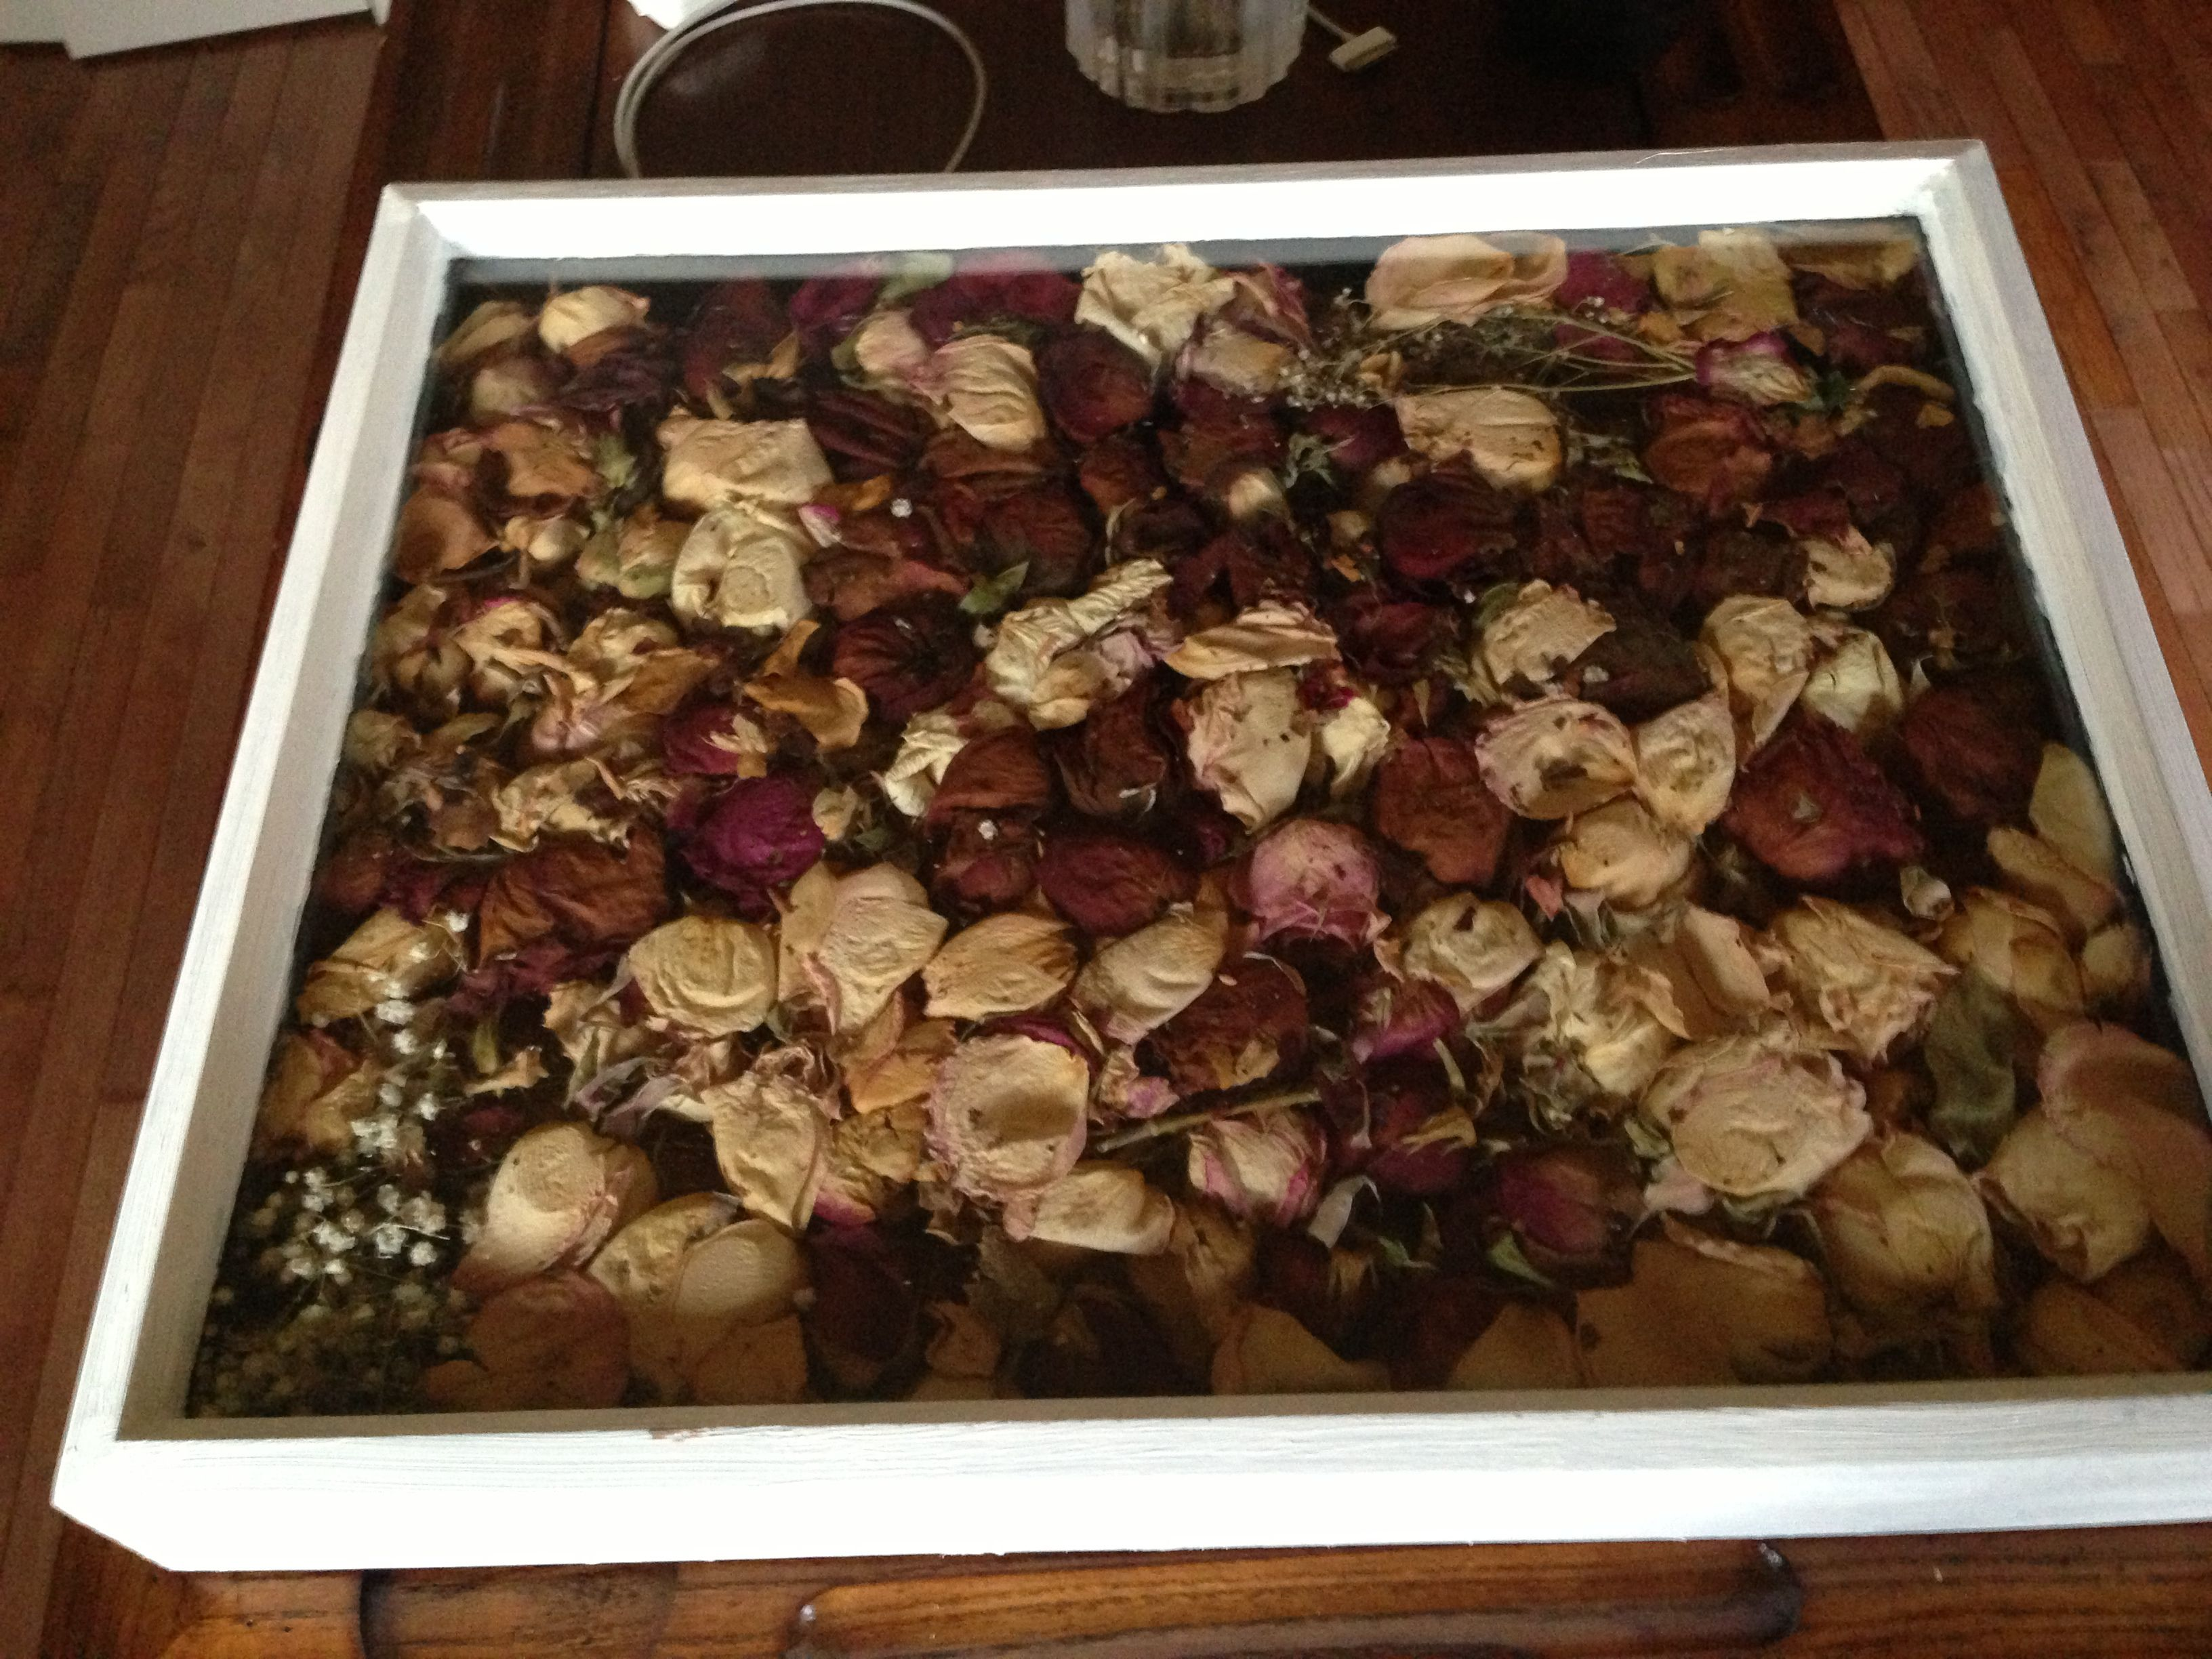 Dried rose petal chinese rose flower rose tea buy rose petal - Dried Rose Petals From Over The Years Idea To Do With All Petals Flowers I Have Dried